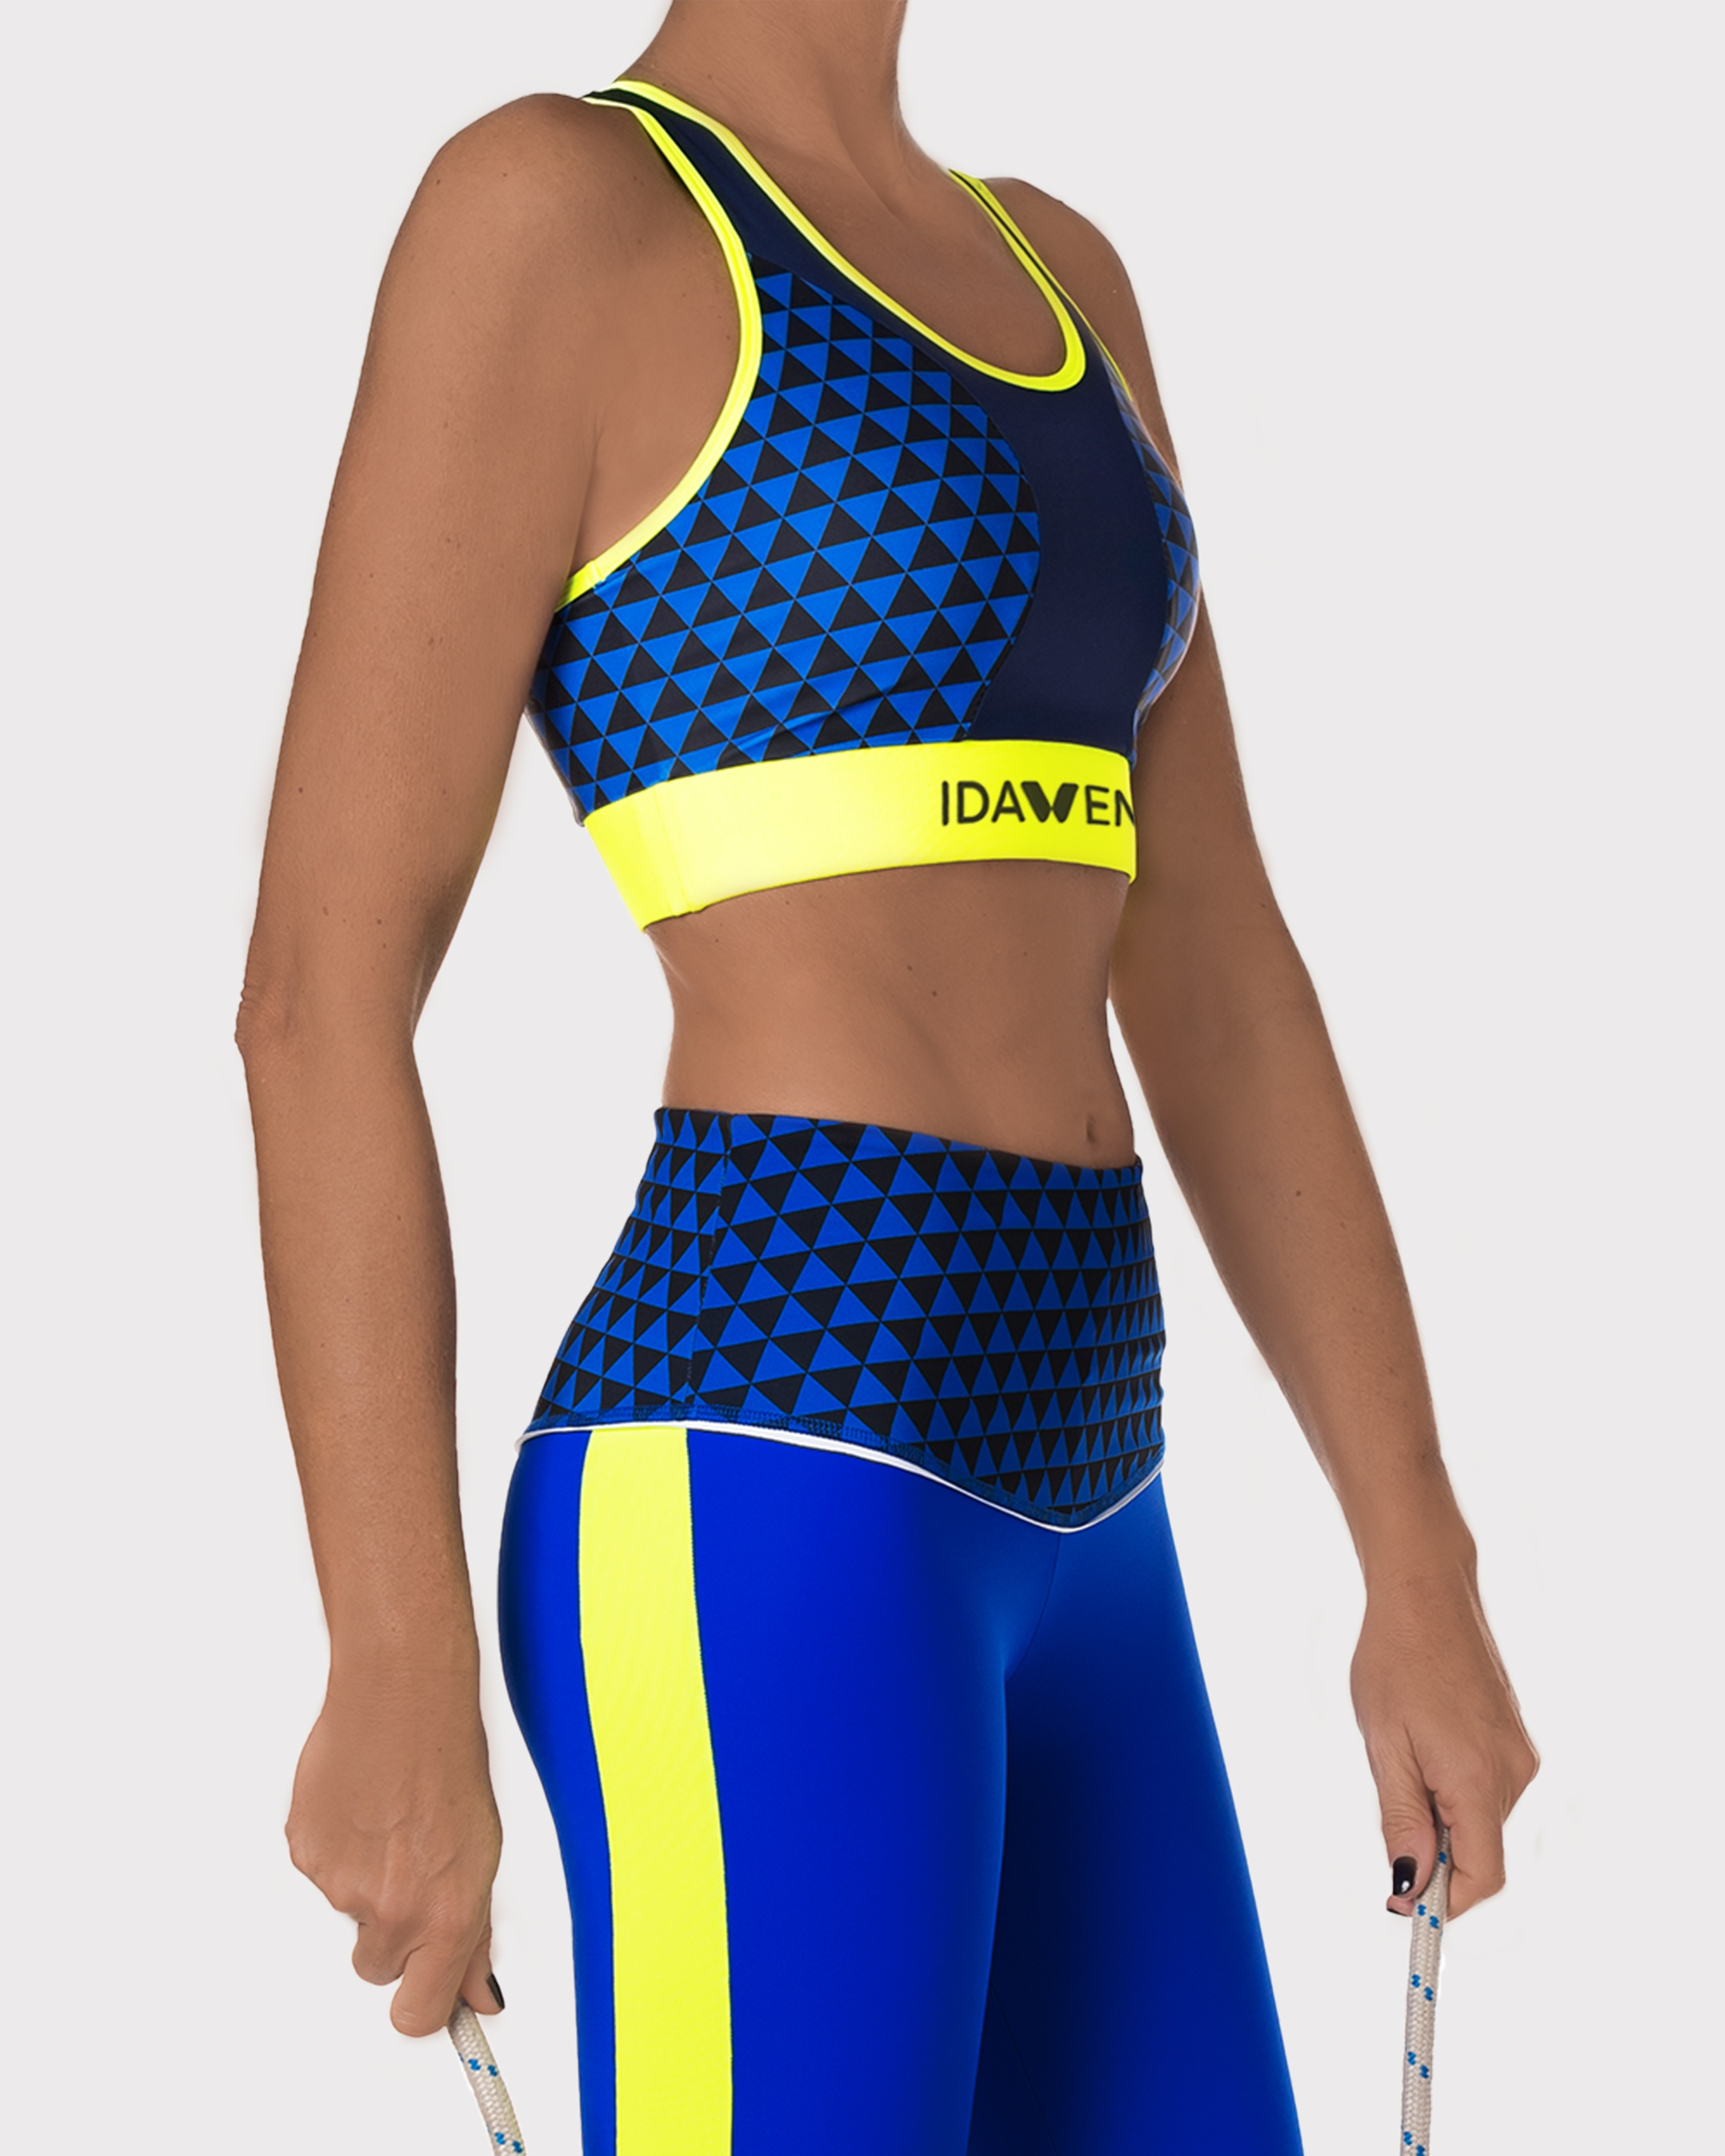 9155e10965730 SPORTS BRA KLEIN SPORTS BRAS AND TOPS CE IDAWEN - Woman and